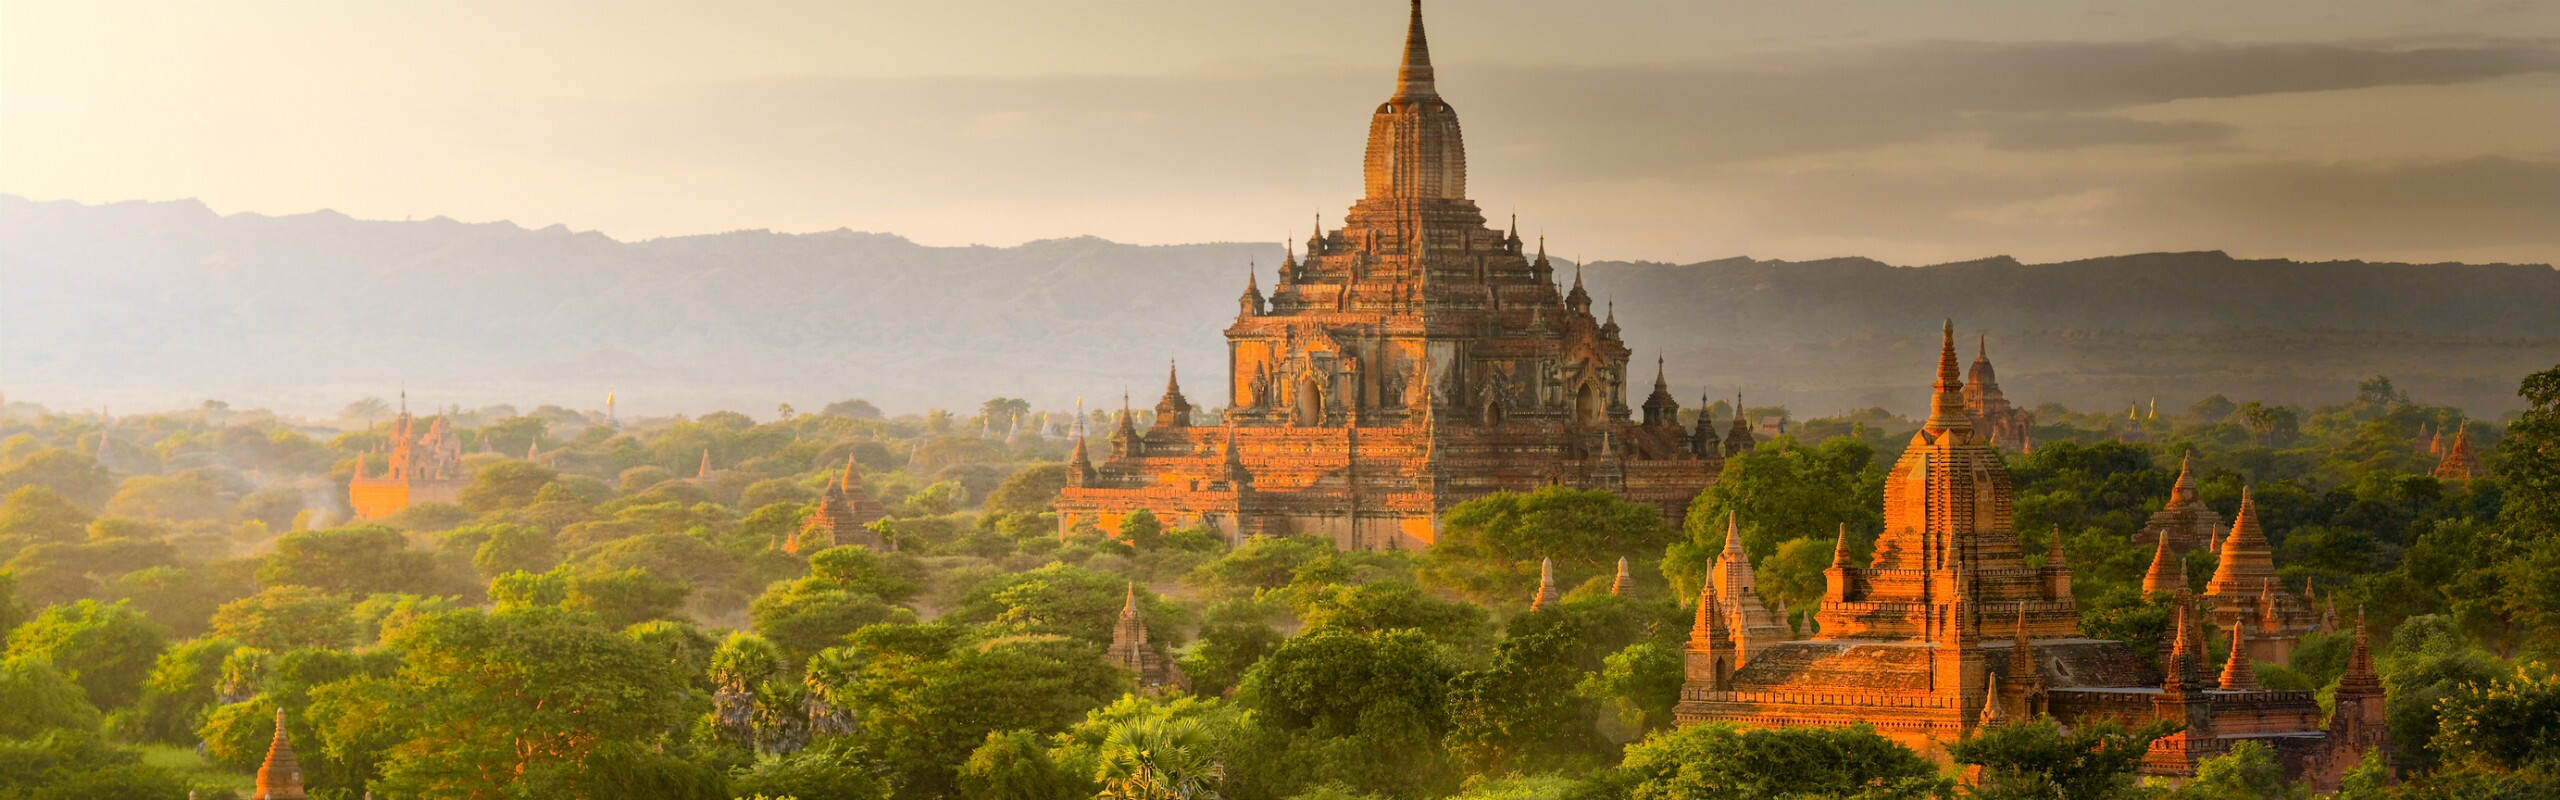 August Weather in Bagan - Rainfall Increases Dramatically